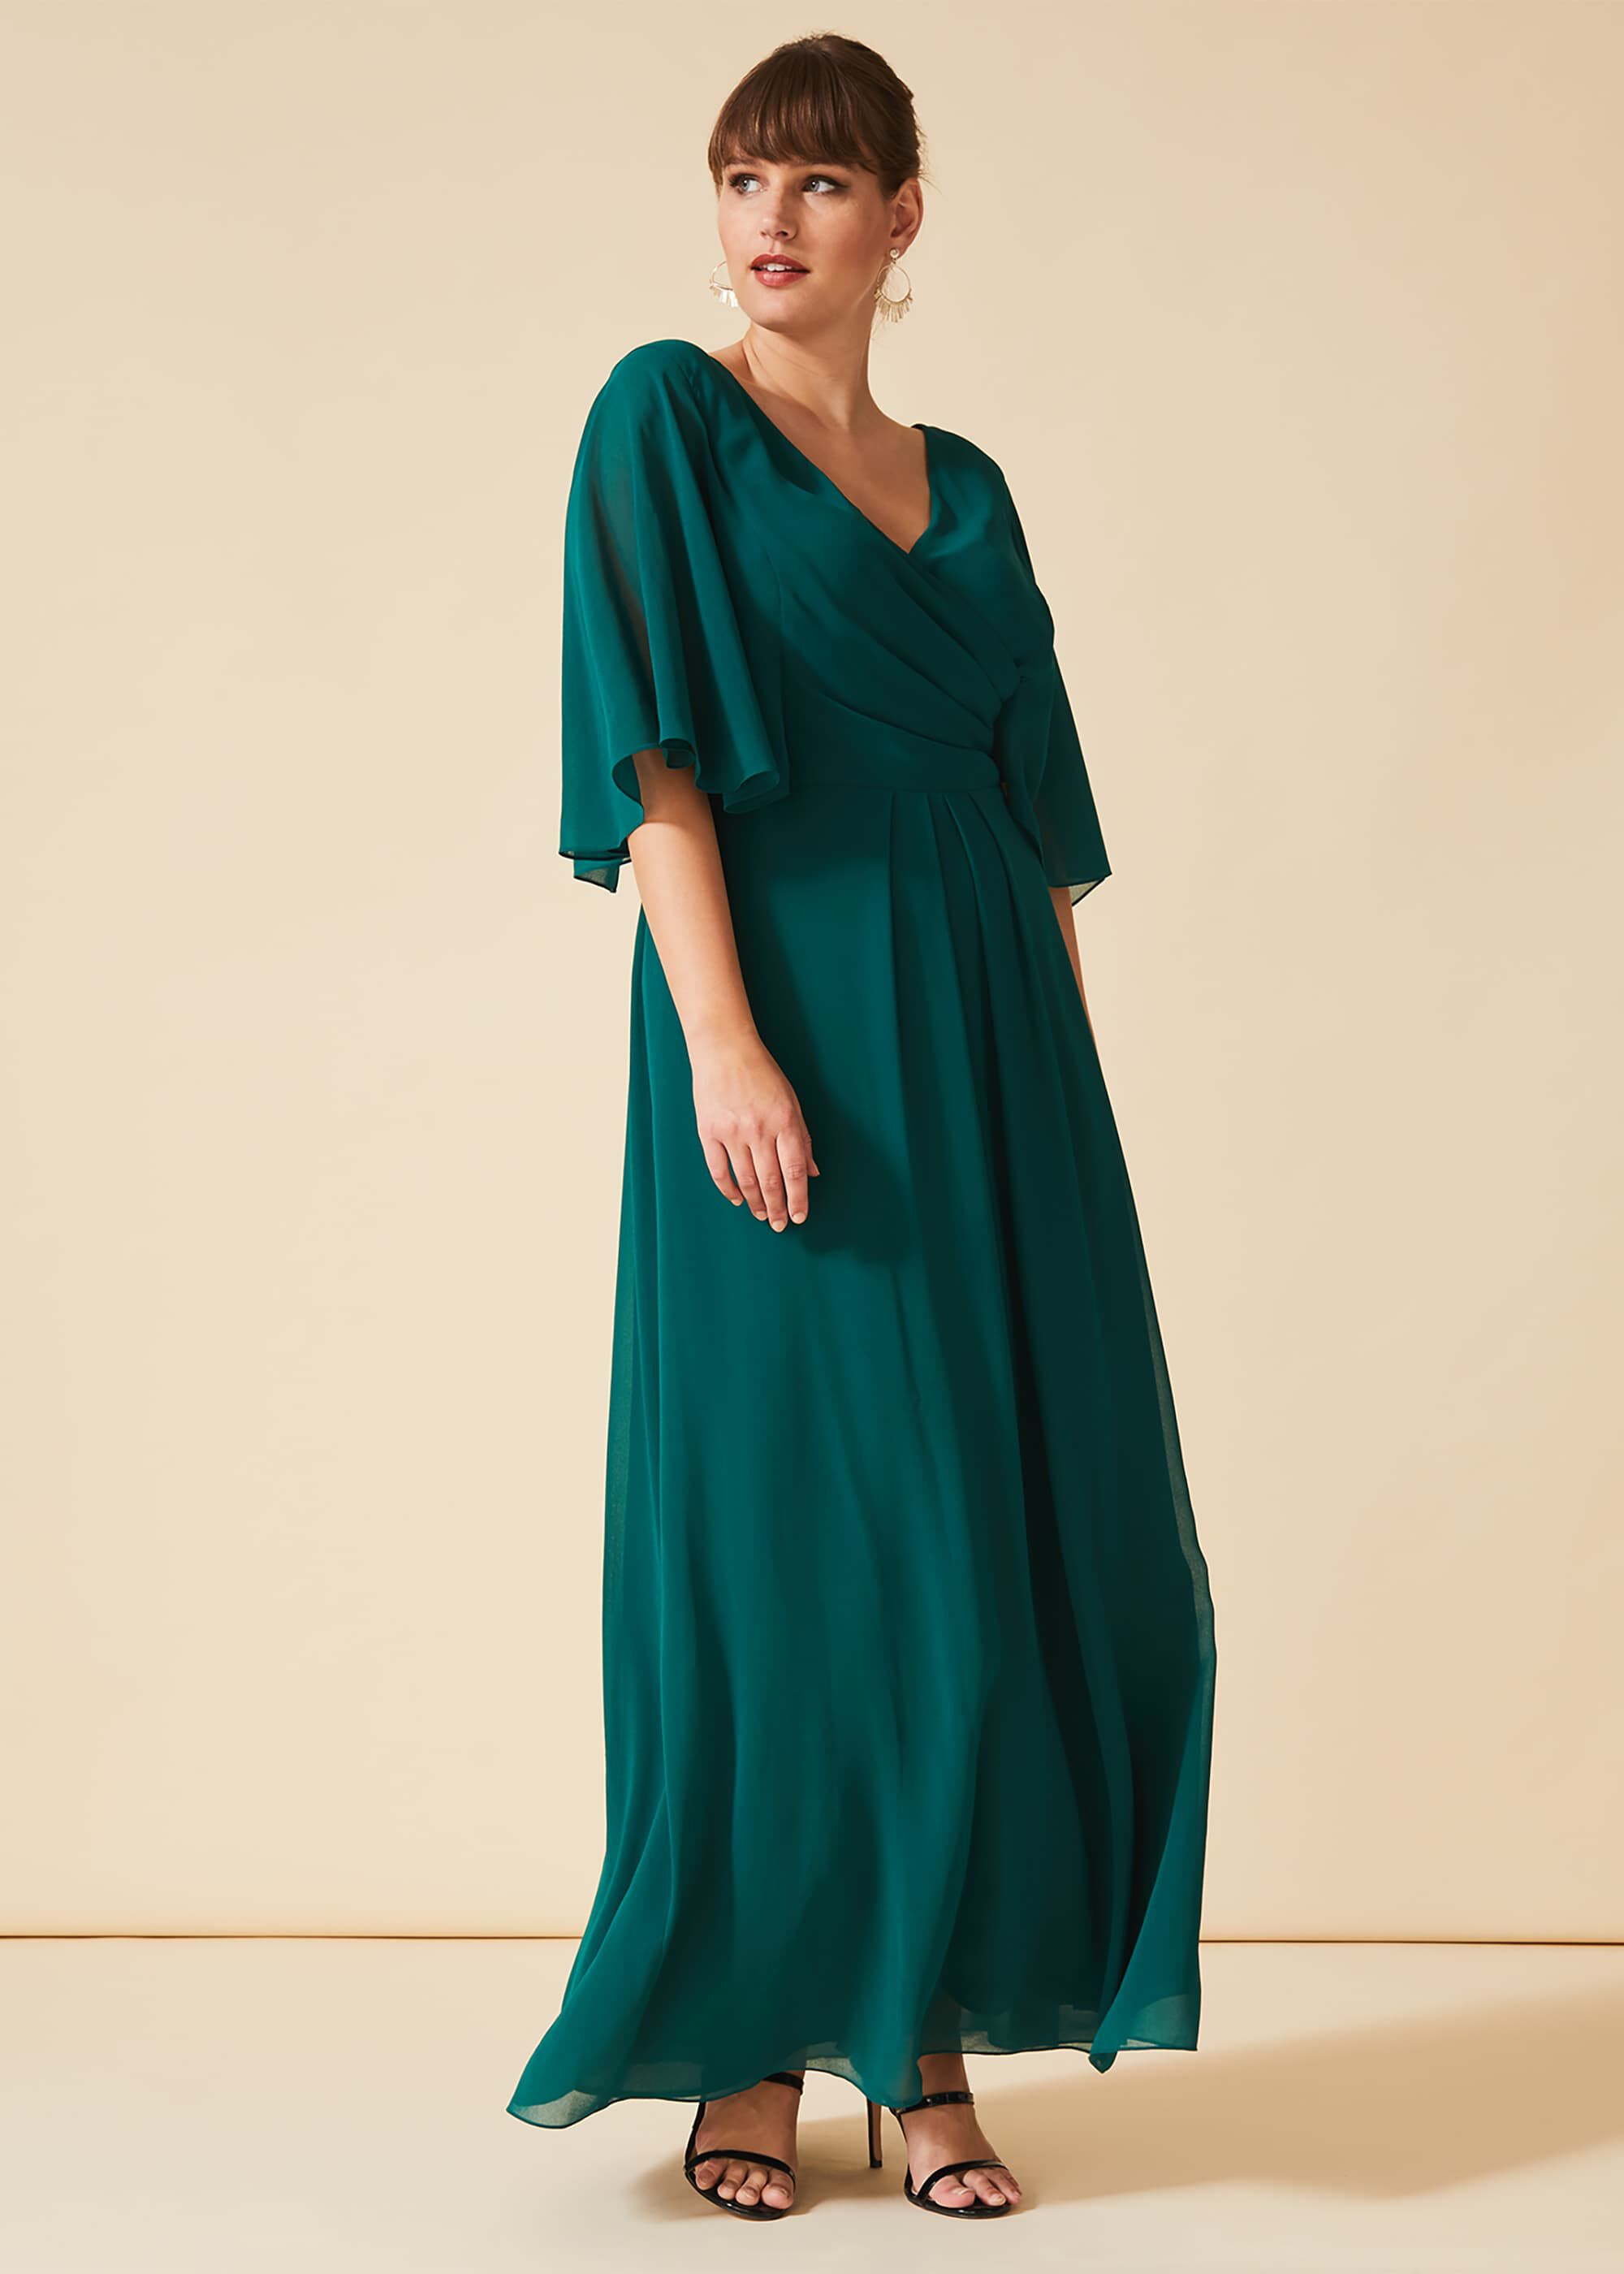 Studio 8 Opal Maxi Bridesmaid Dress, Green, Maxi, Occasion Dress